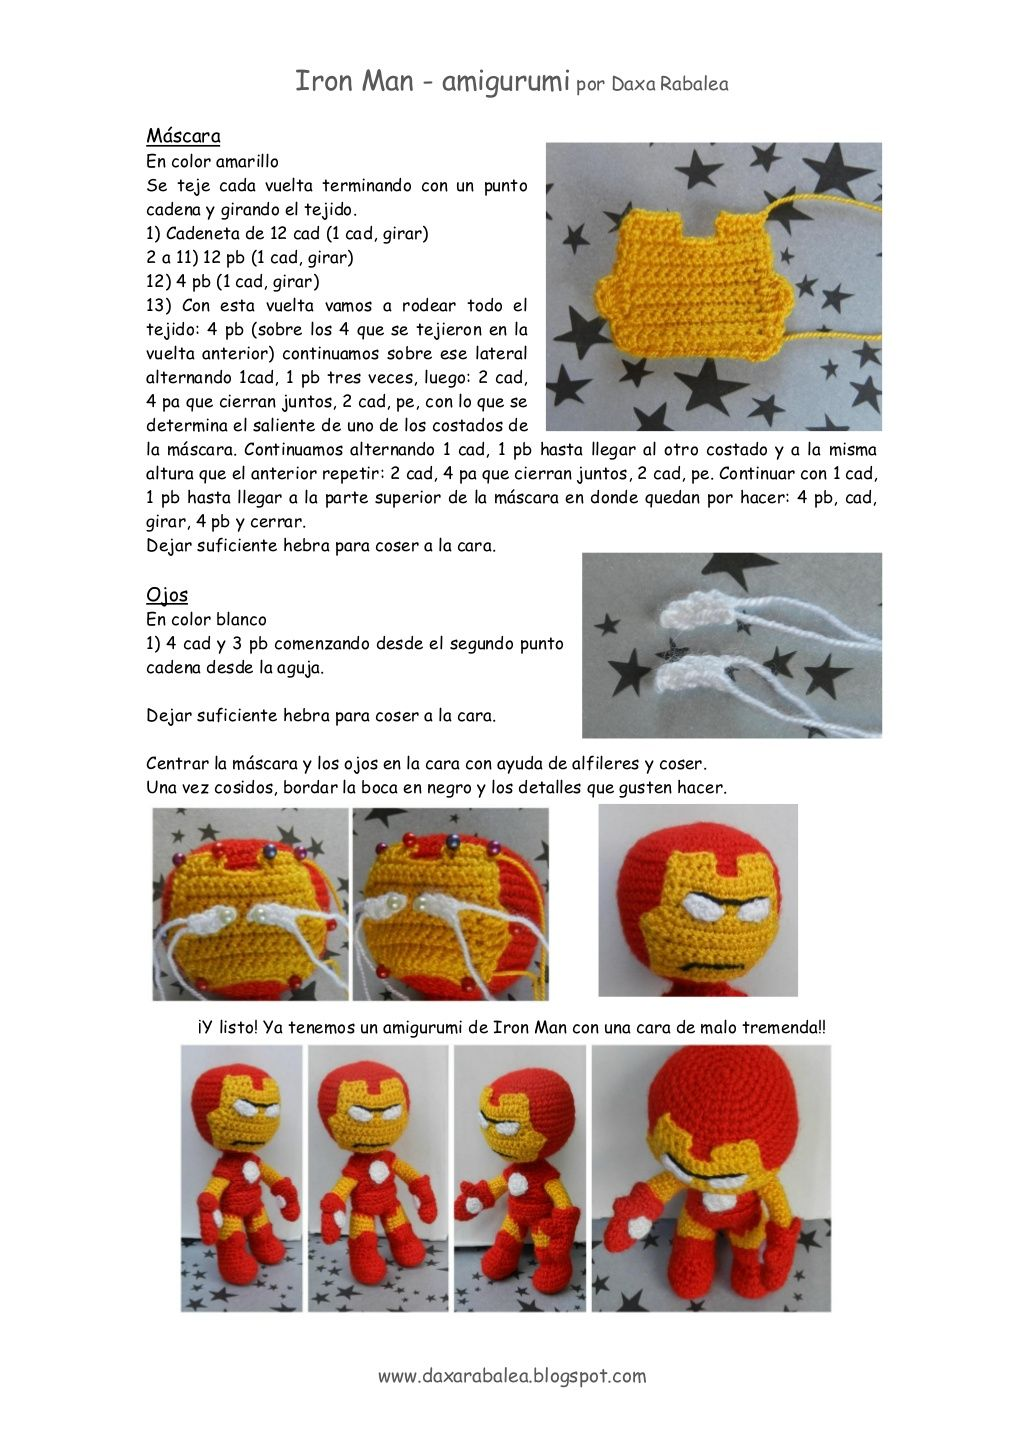 IRON MAN, DE GANCHILLO/CROCHET-PATRON 6/6 | Peluches tejidos o de ...